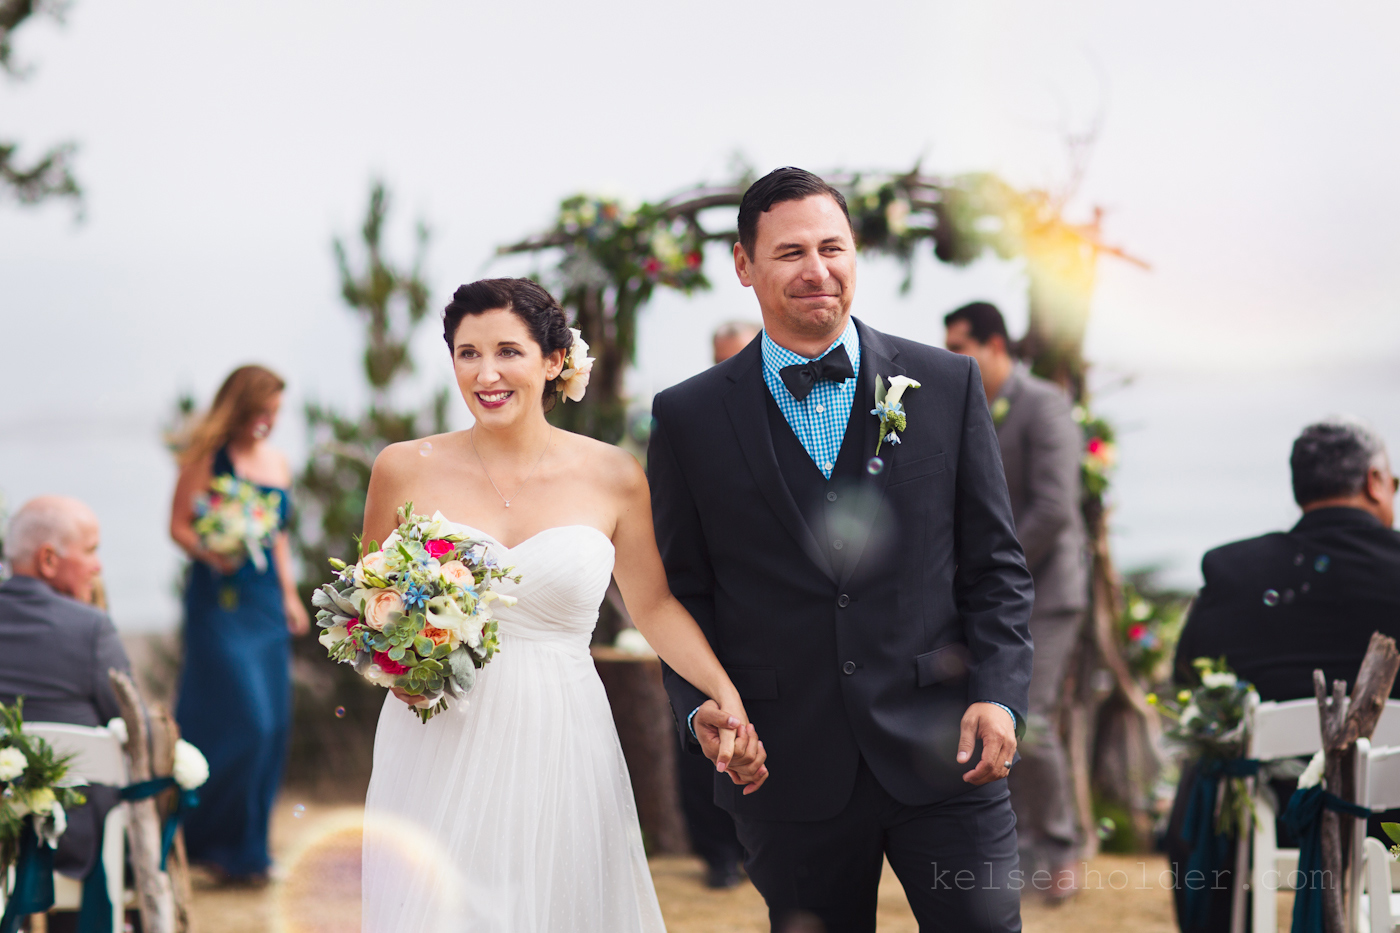 kelsea_holder_eco_outdoor_california_wedding036